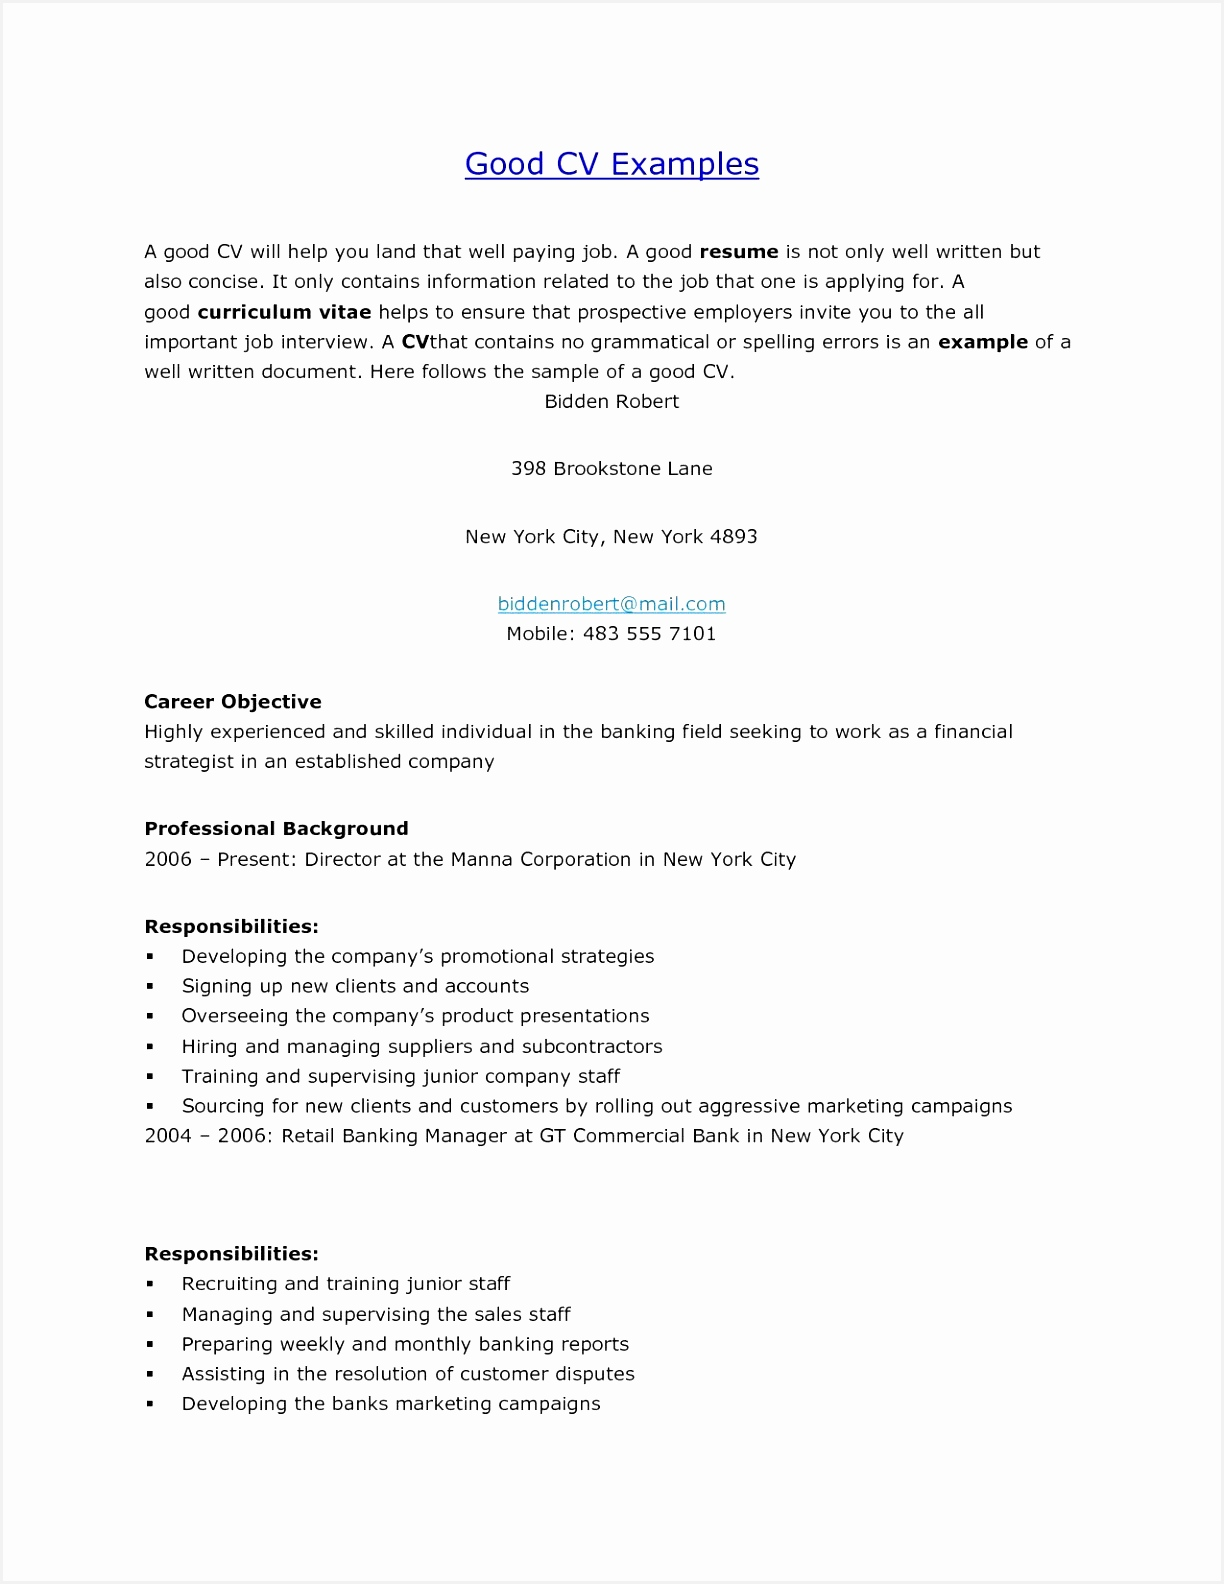 Resume For Managing Director Position Inspirational Best Grapher Resume Sample Beautiful Resume Quotes 0d How To15841224